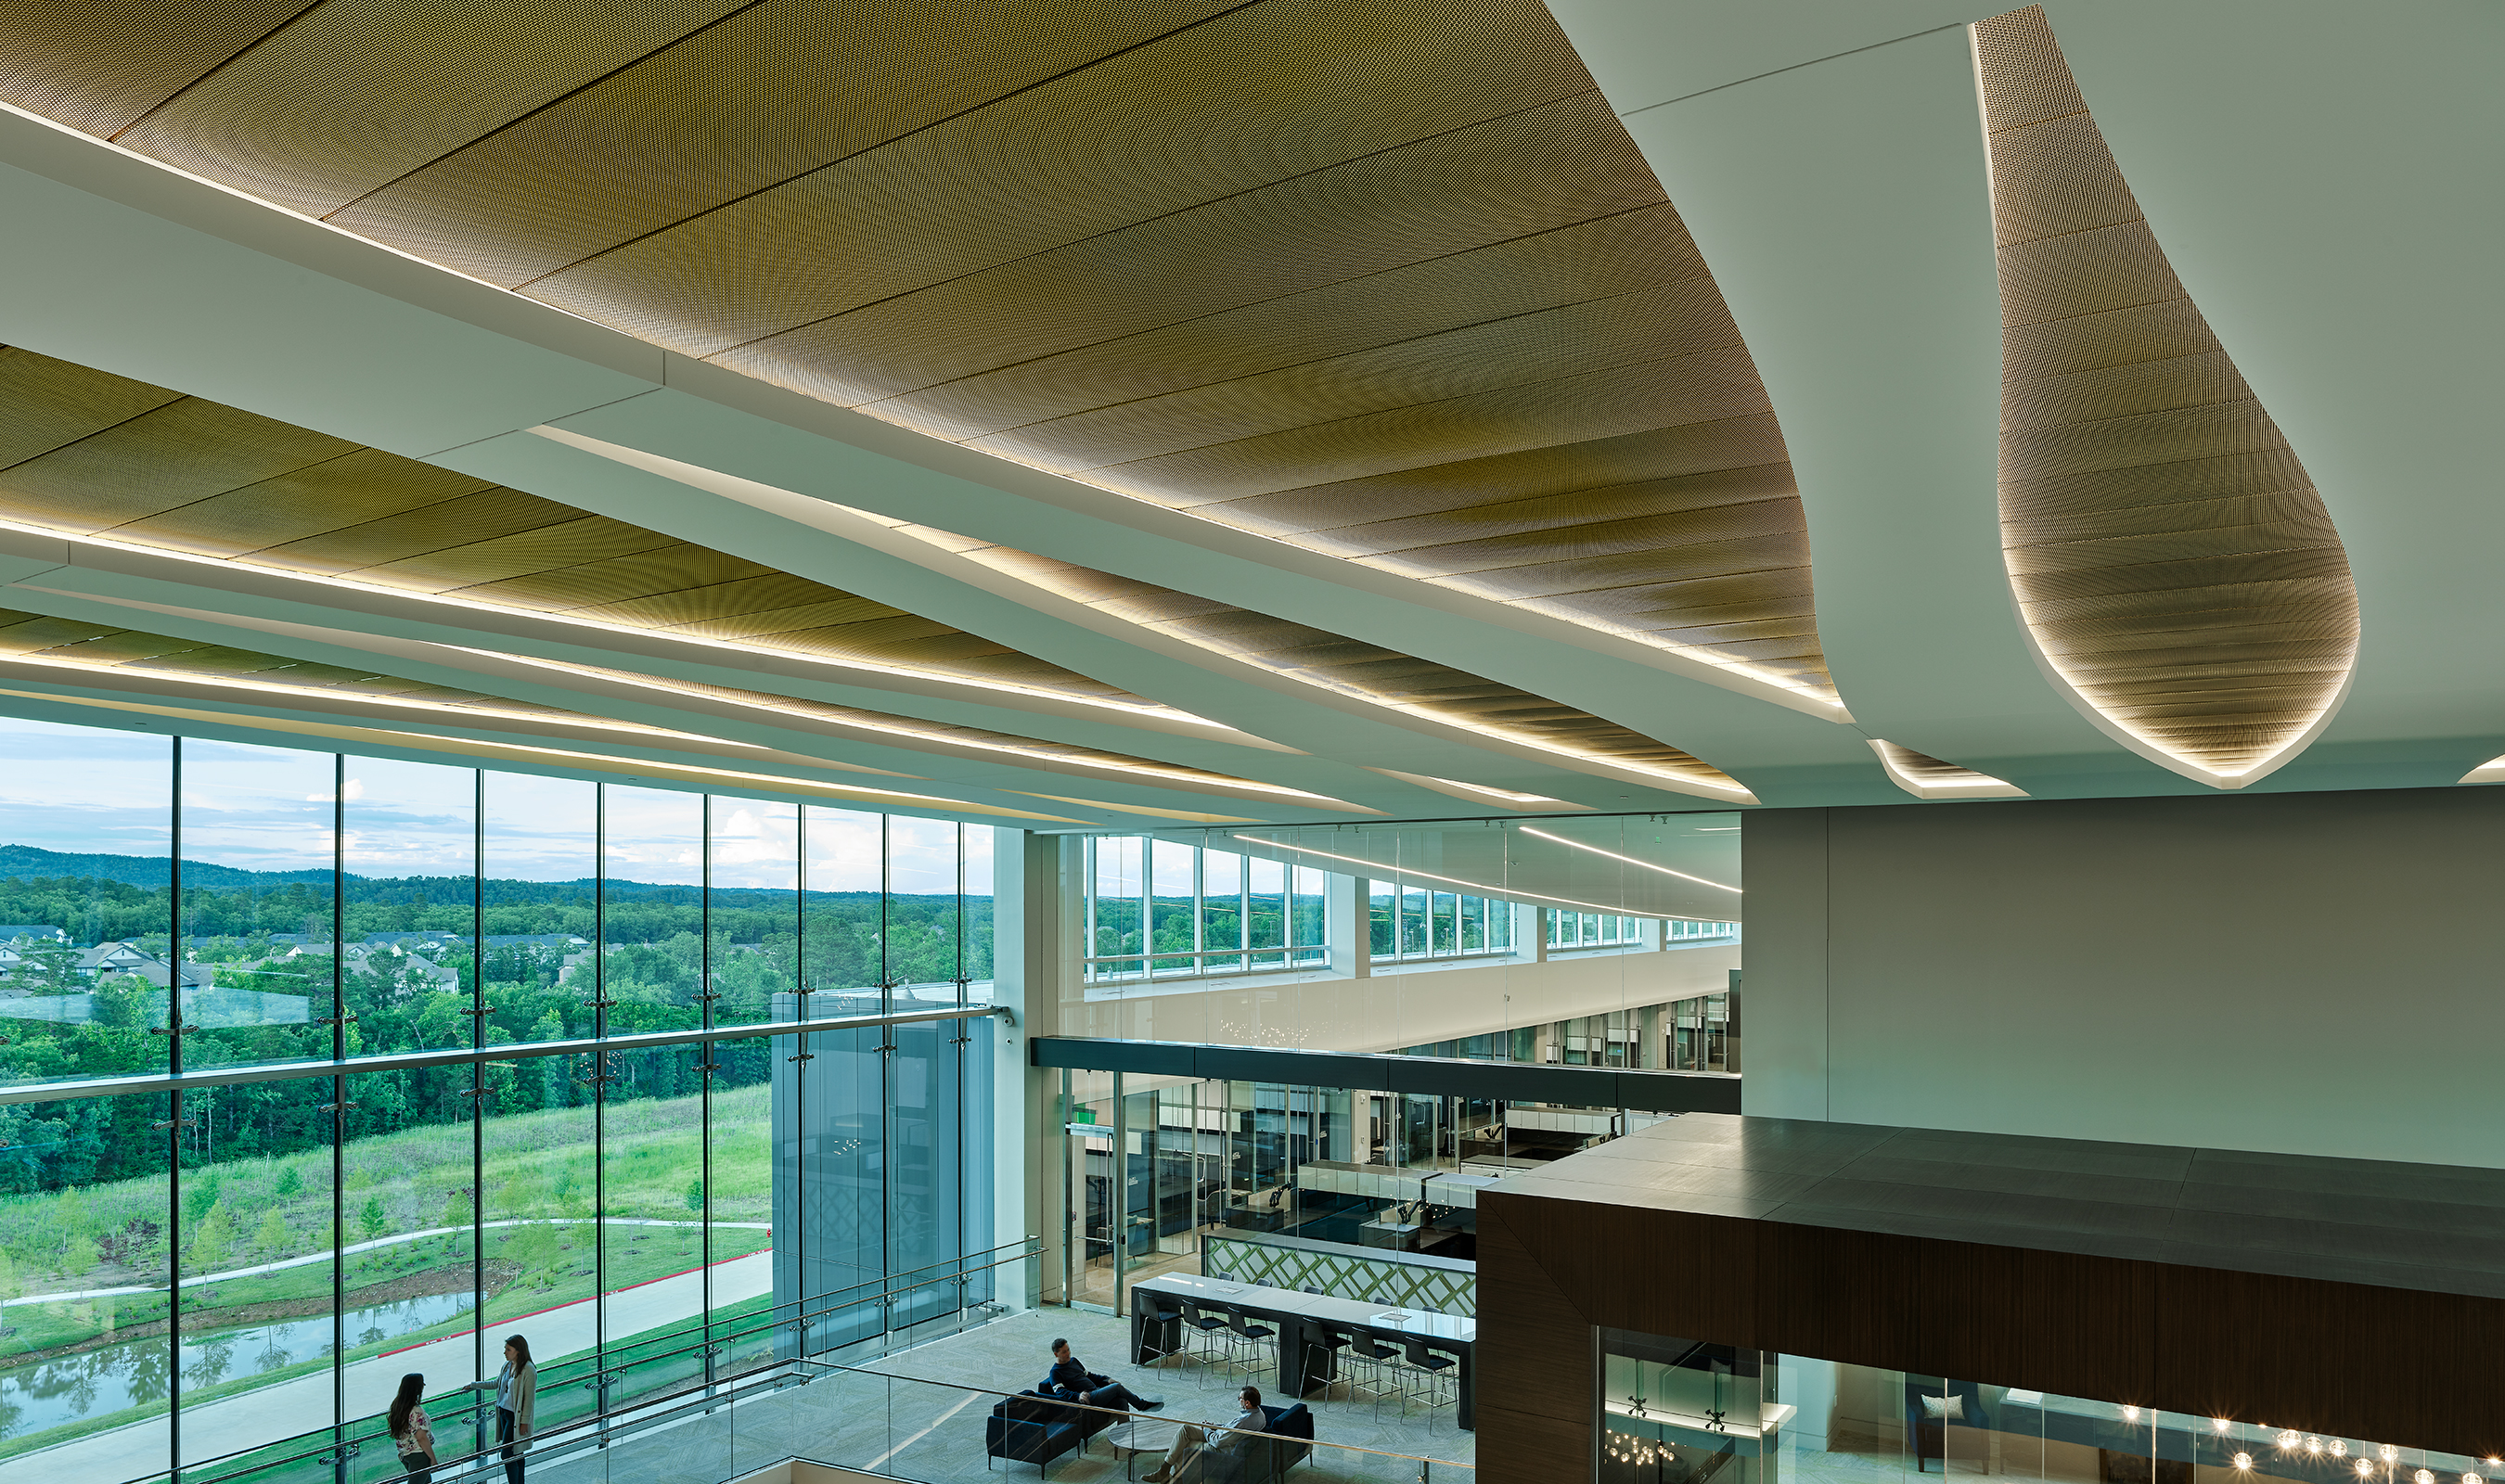 SZ-4 creates a near opaque ceiling tile to cover the underlying vents.